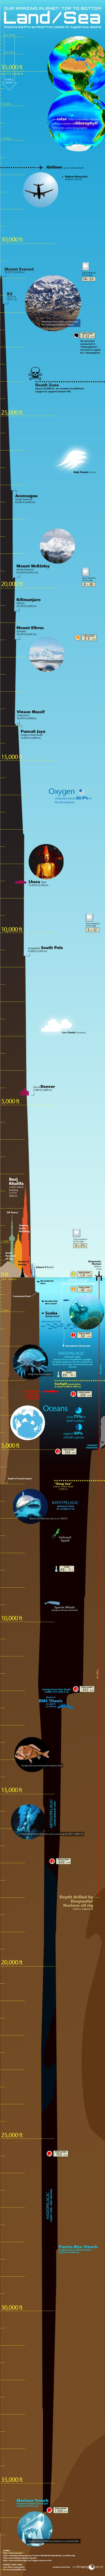 Infographic: Explore the entire Earth's surface from highest peaks to mysterious depths.